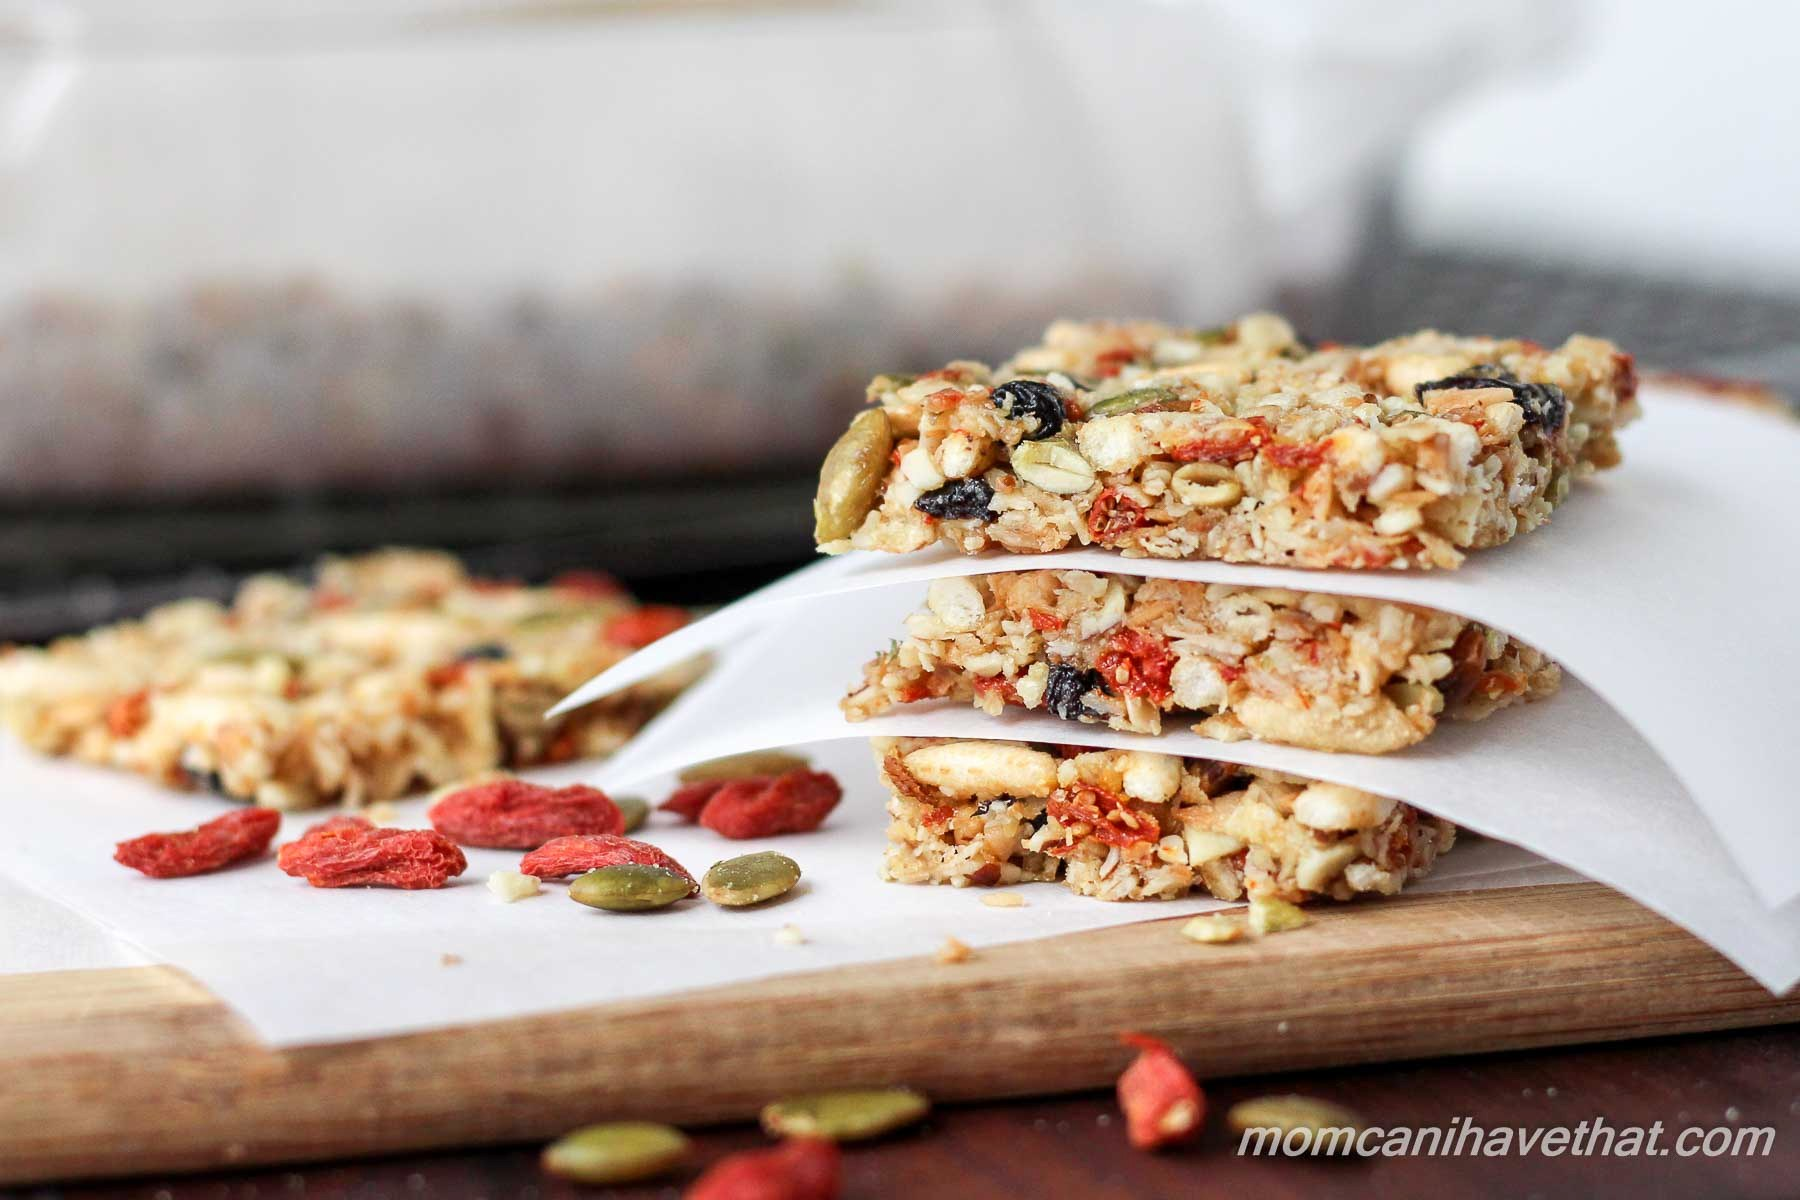 Gluten-free oats, nuts, & seeds make the base for these lightly - sweetened Kitchen Sink Bars healthy - currents, puffed rice & gogi berries make them fun.| gluten-free, dairy-free | MomCanIHaveThat.com